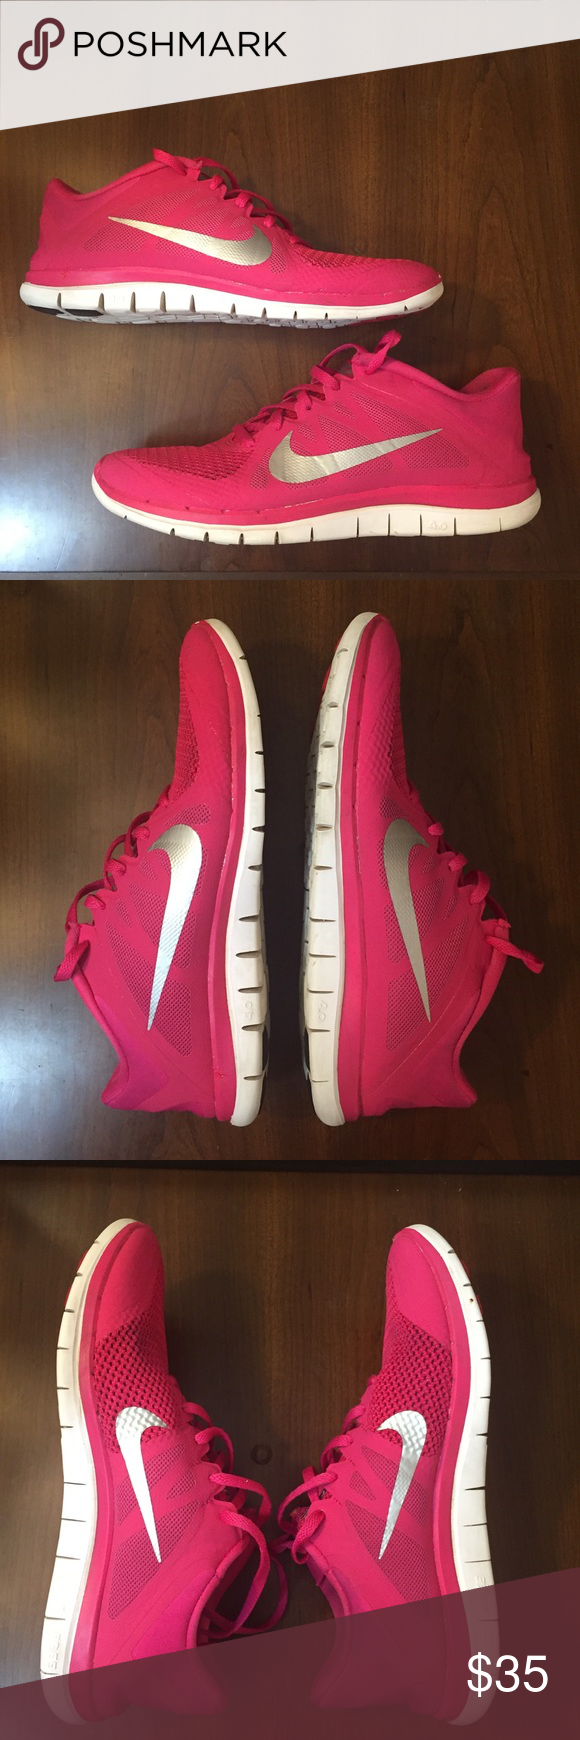 8041fd3e9df3e Women s Nike Free 4.0 V4 Running Shoes - 10